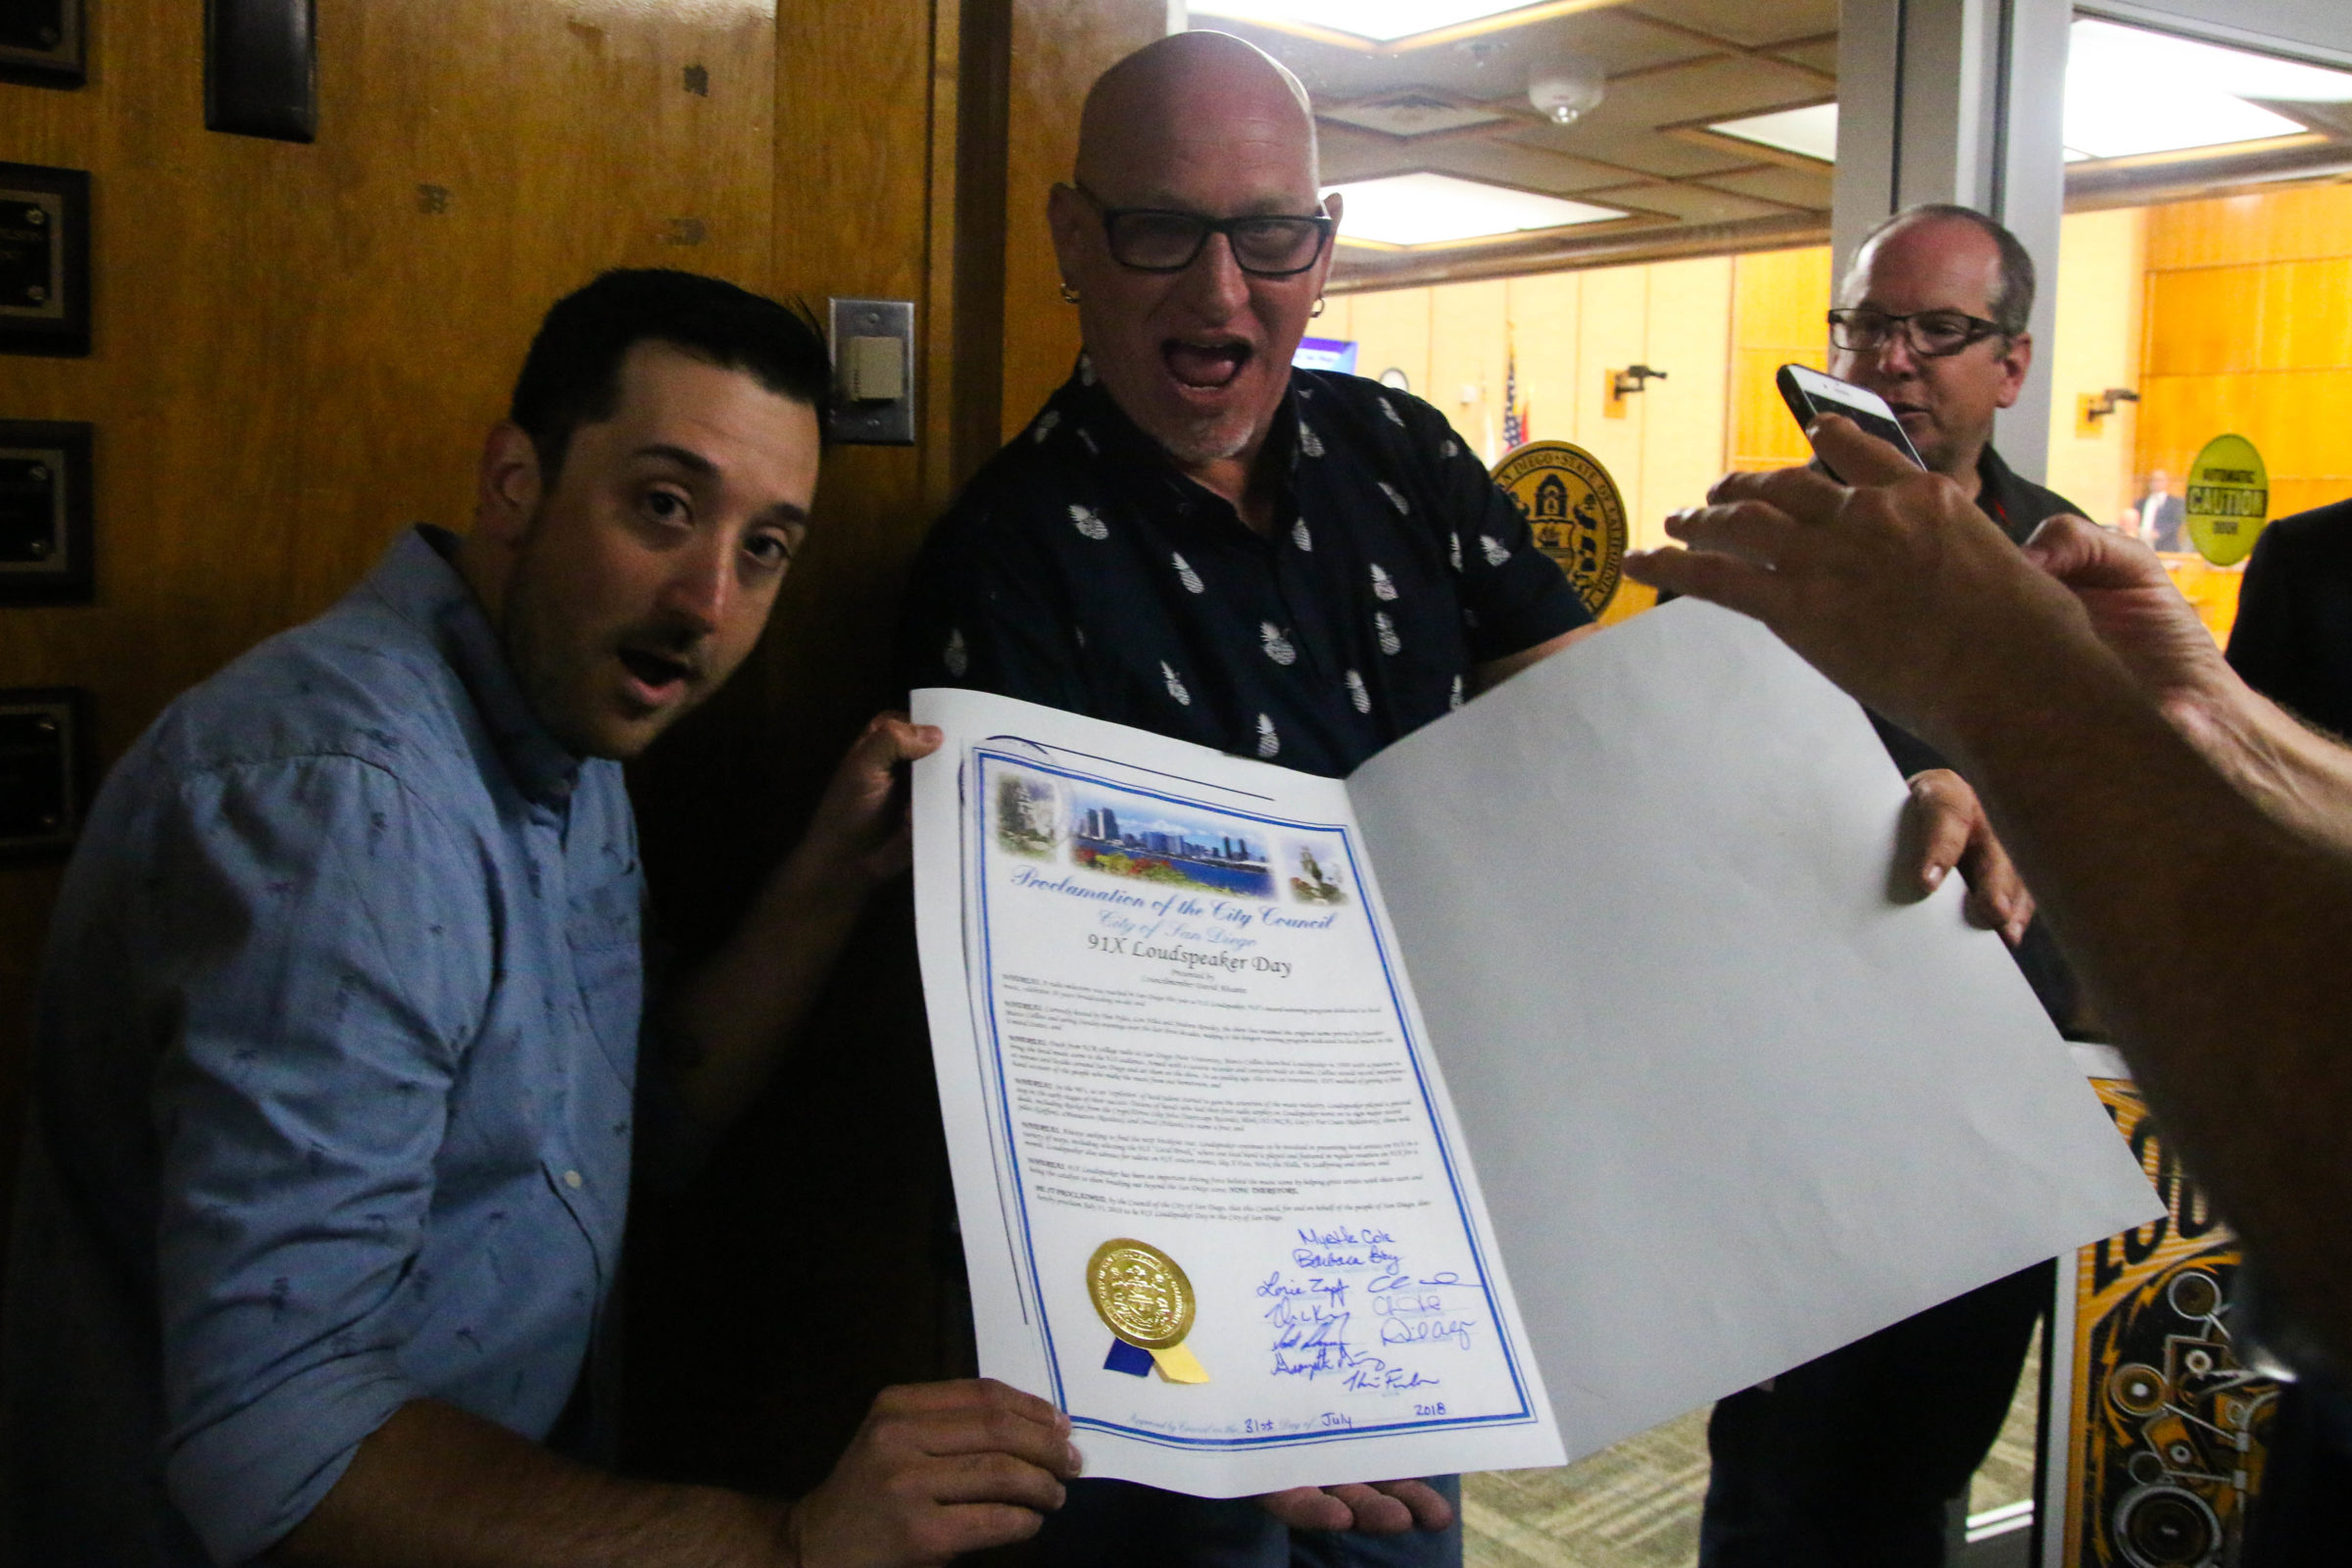 91X Loudspeaker Day In The City Of San Diego July 31st 2018